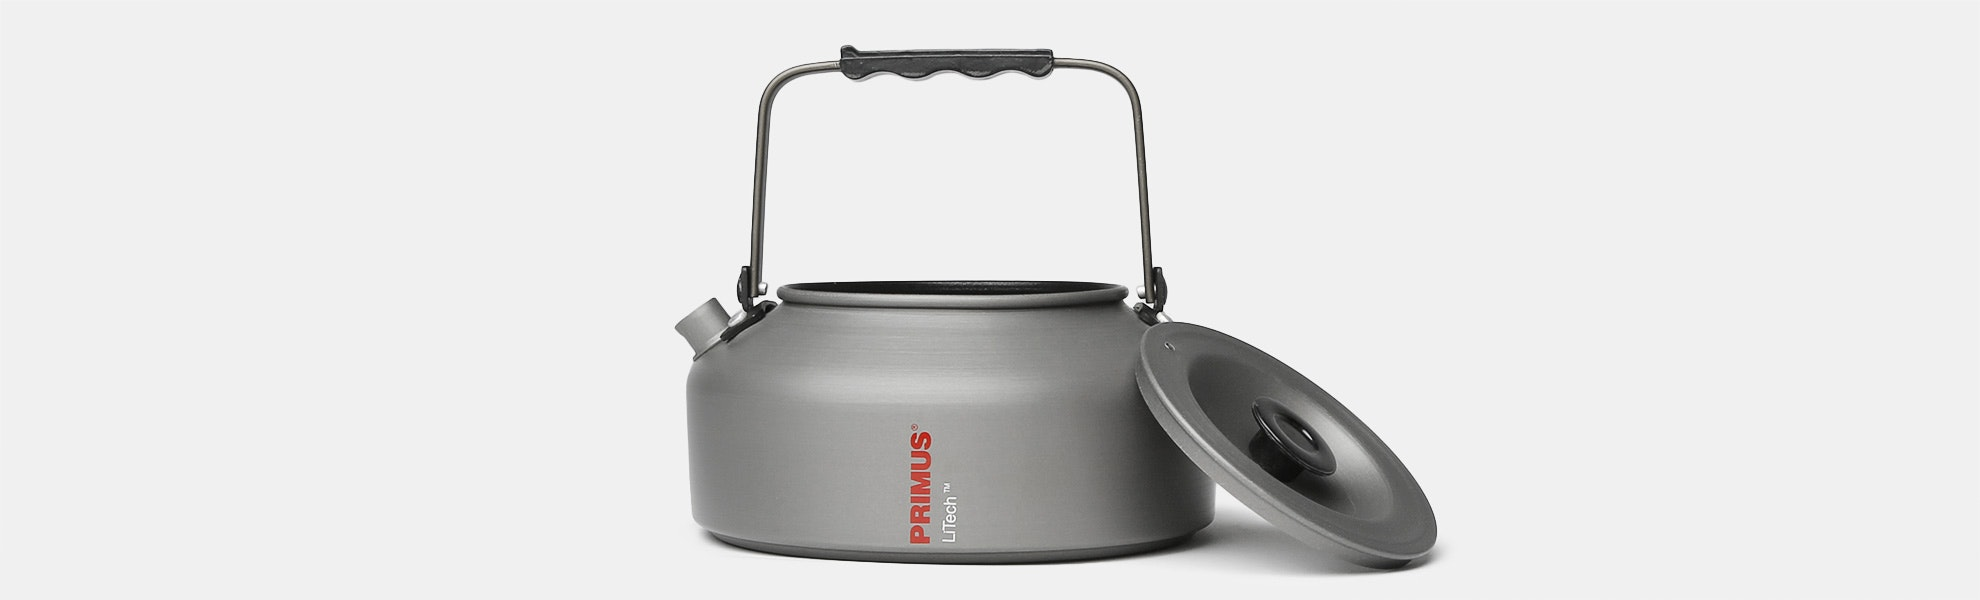 Primus LiTech Coffee & Tea Kettle